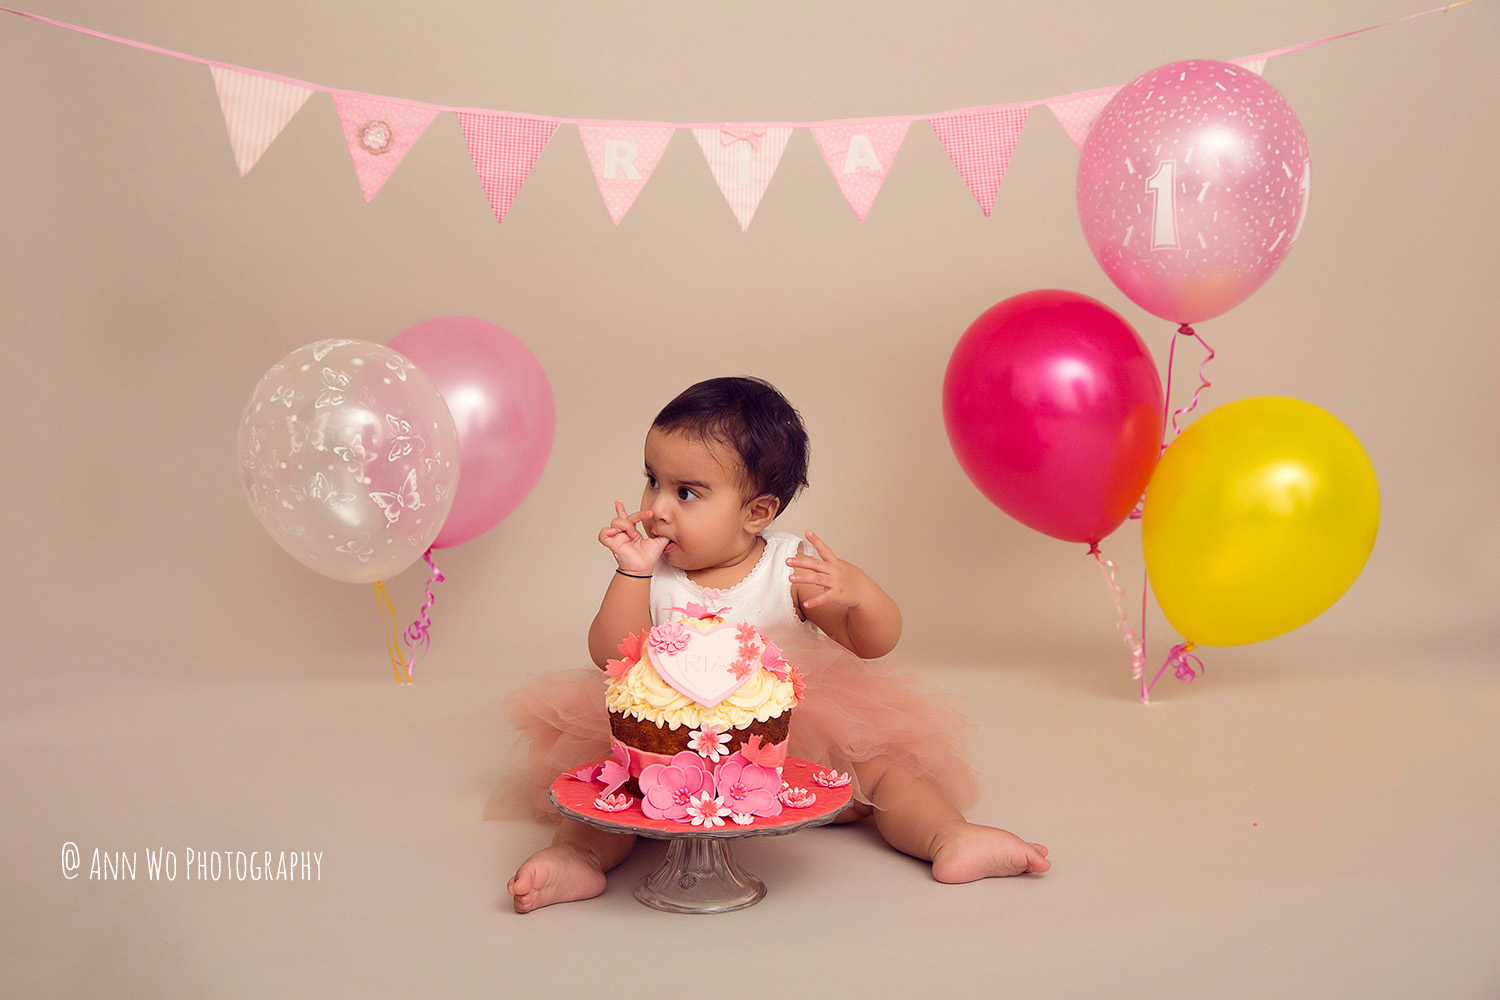 cake-smash-ria-london-baby-photographer09.jpg